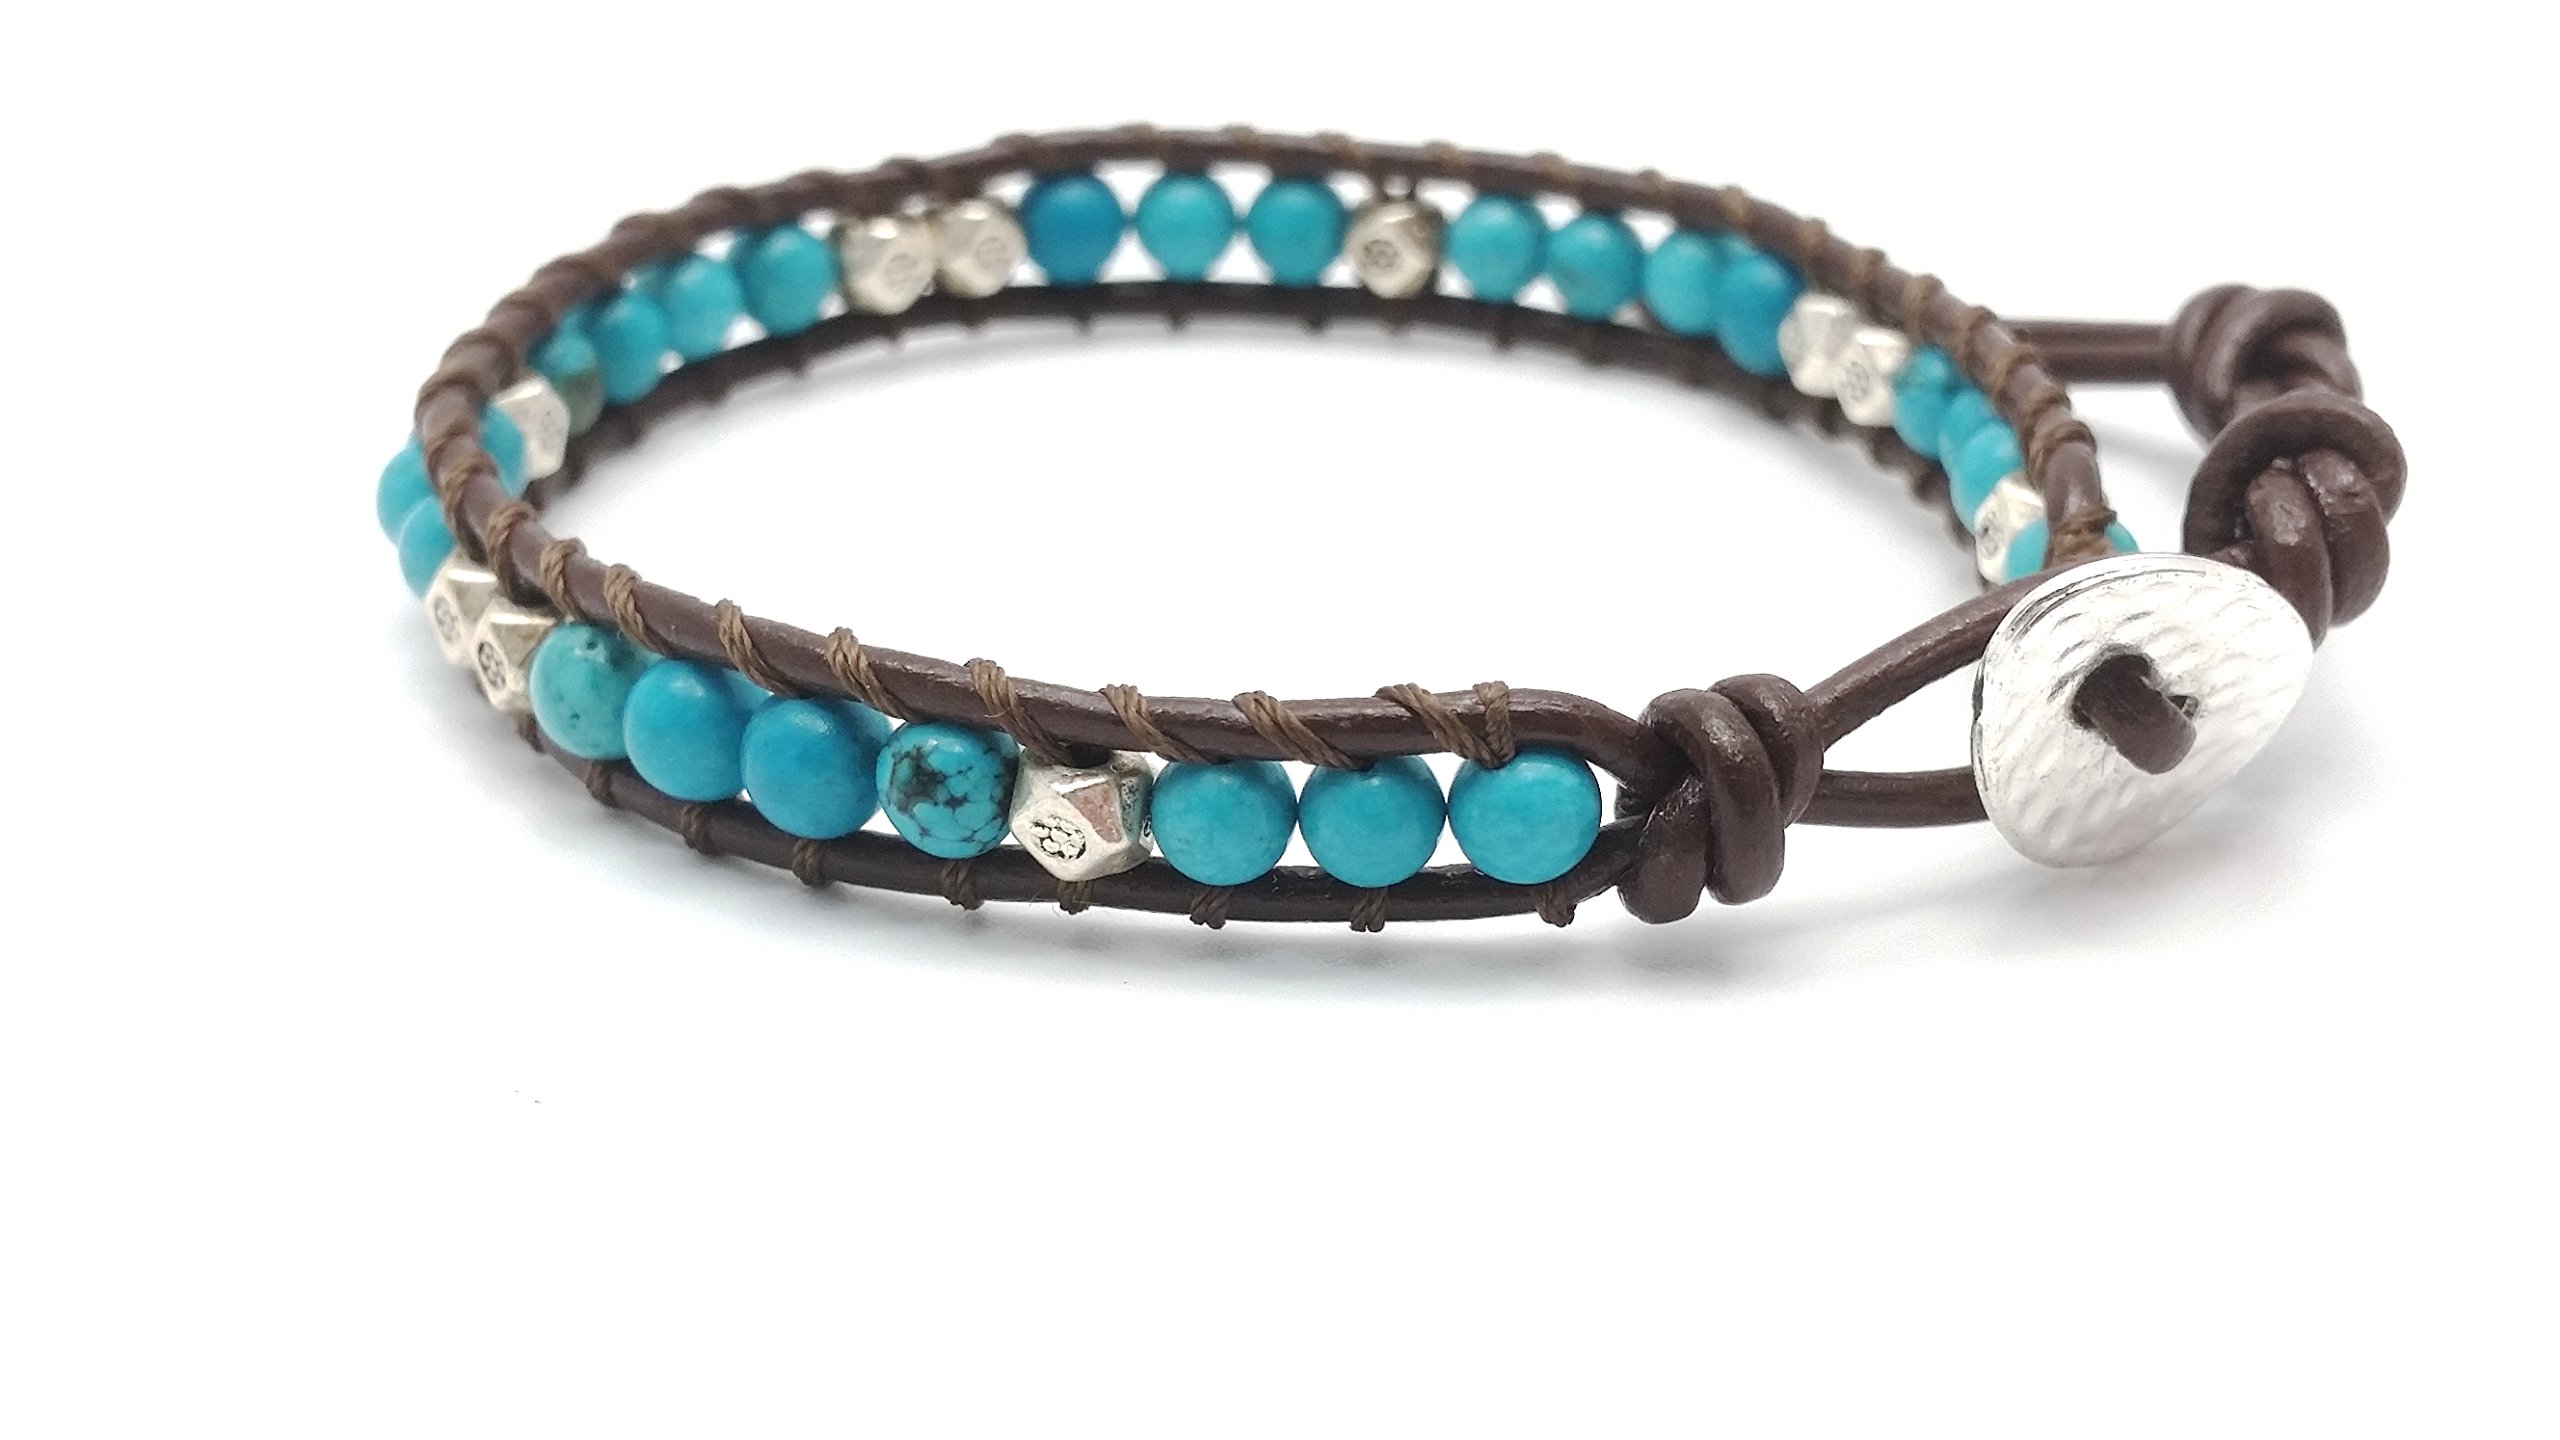 DEW Drops Reconstructed Turquoise and Silver beads Leather Wrap Bracelet, Single Wrap, 4mm/bead